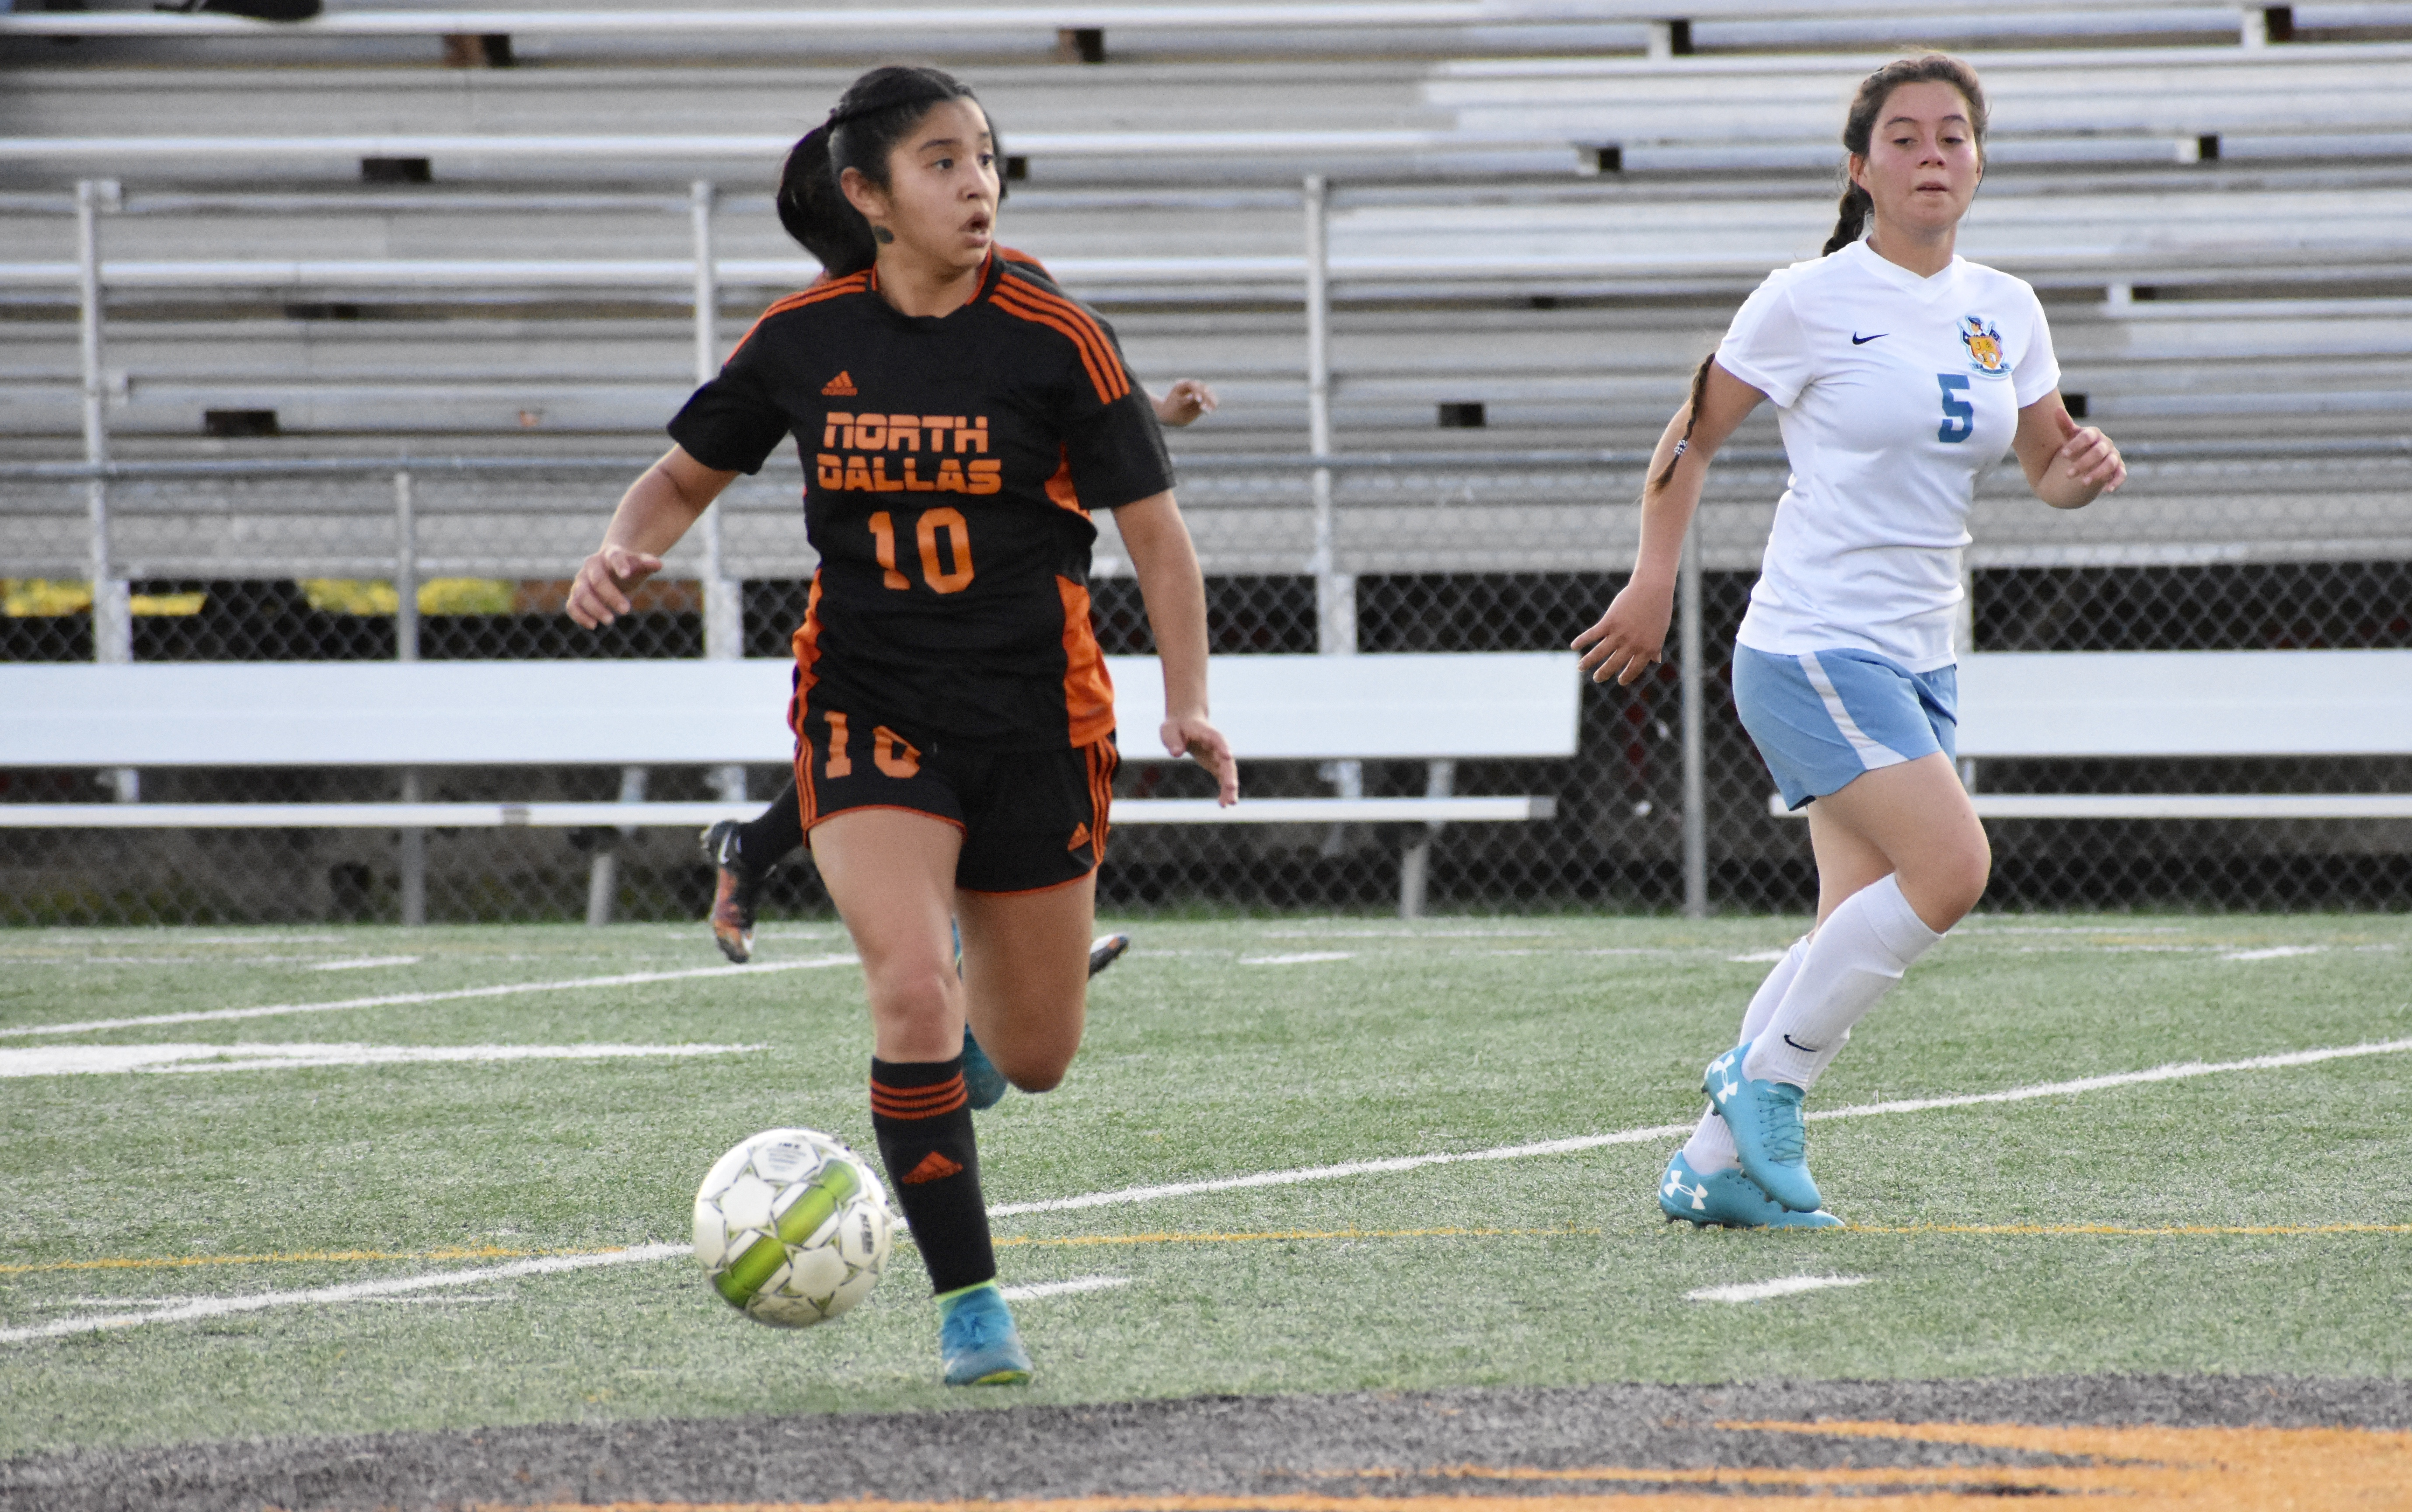 North Dallas midfielder Xya Balderas named 12-5A Offensive Player of the Year